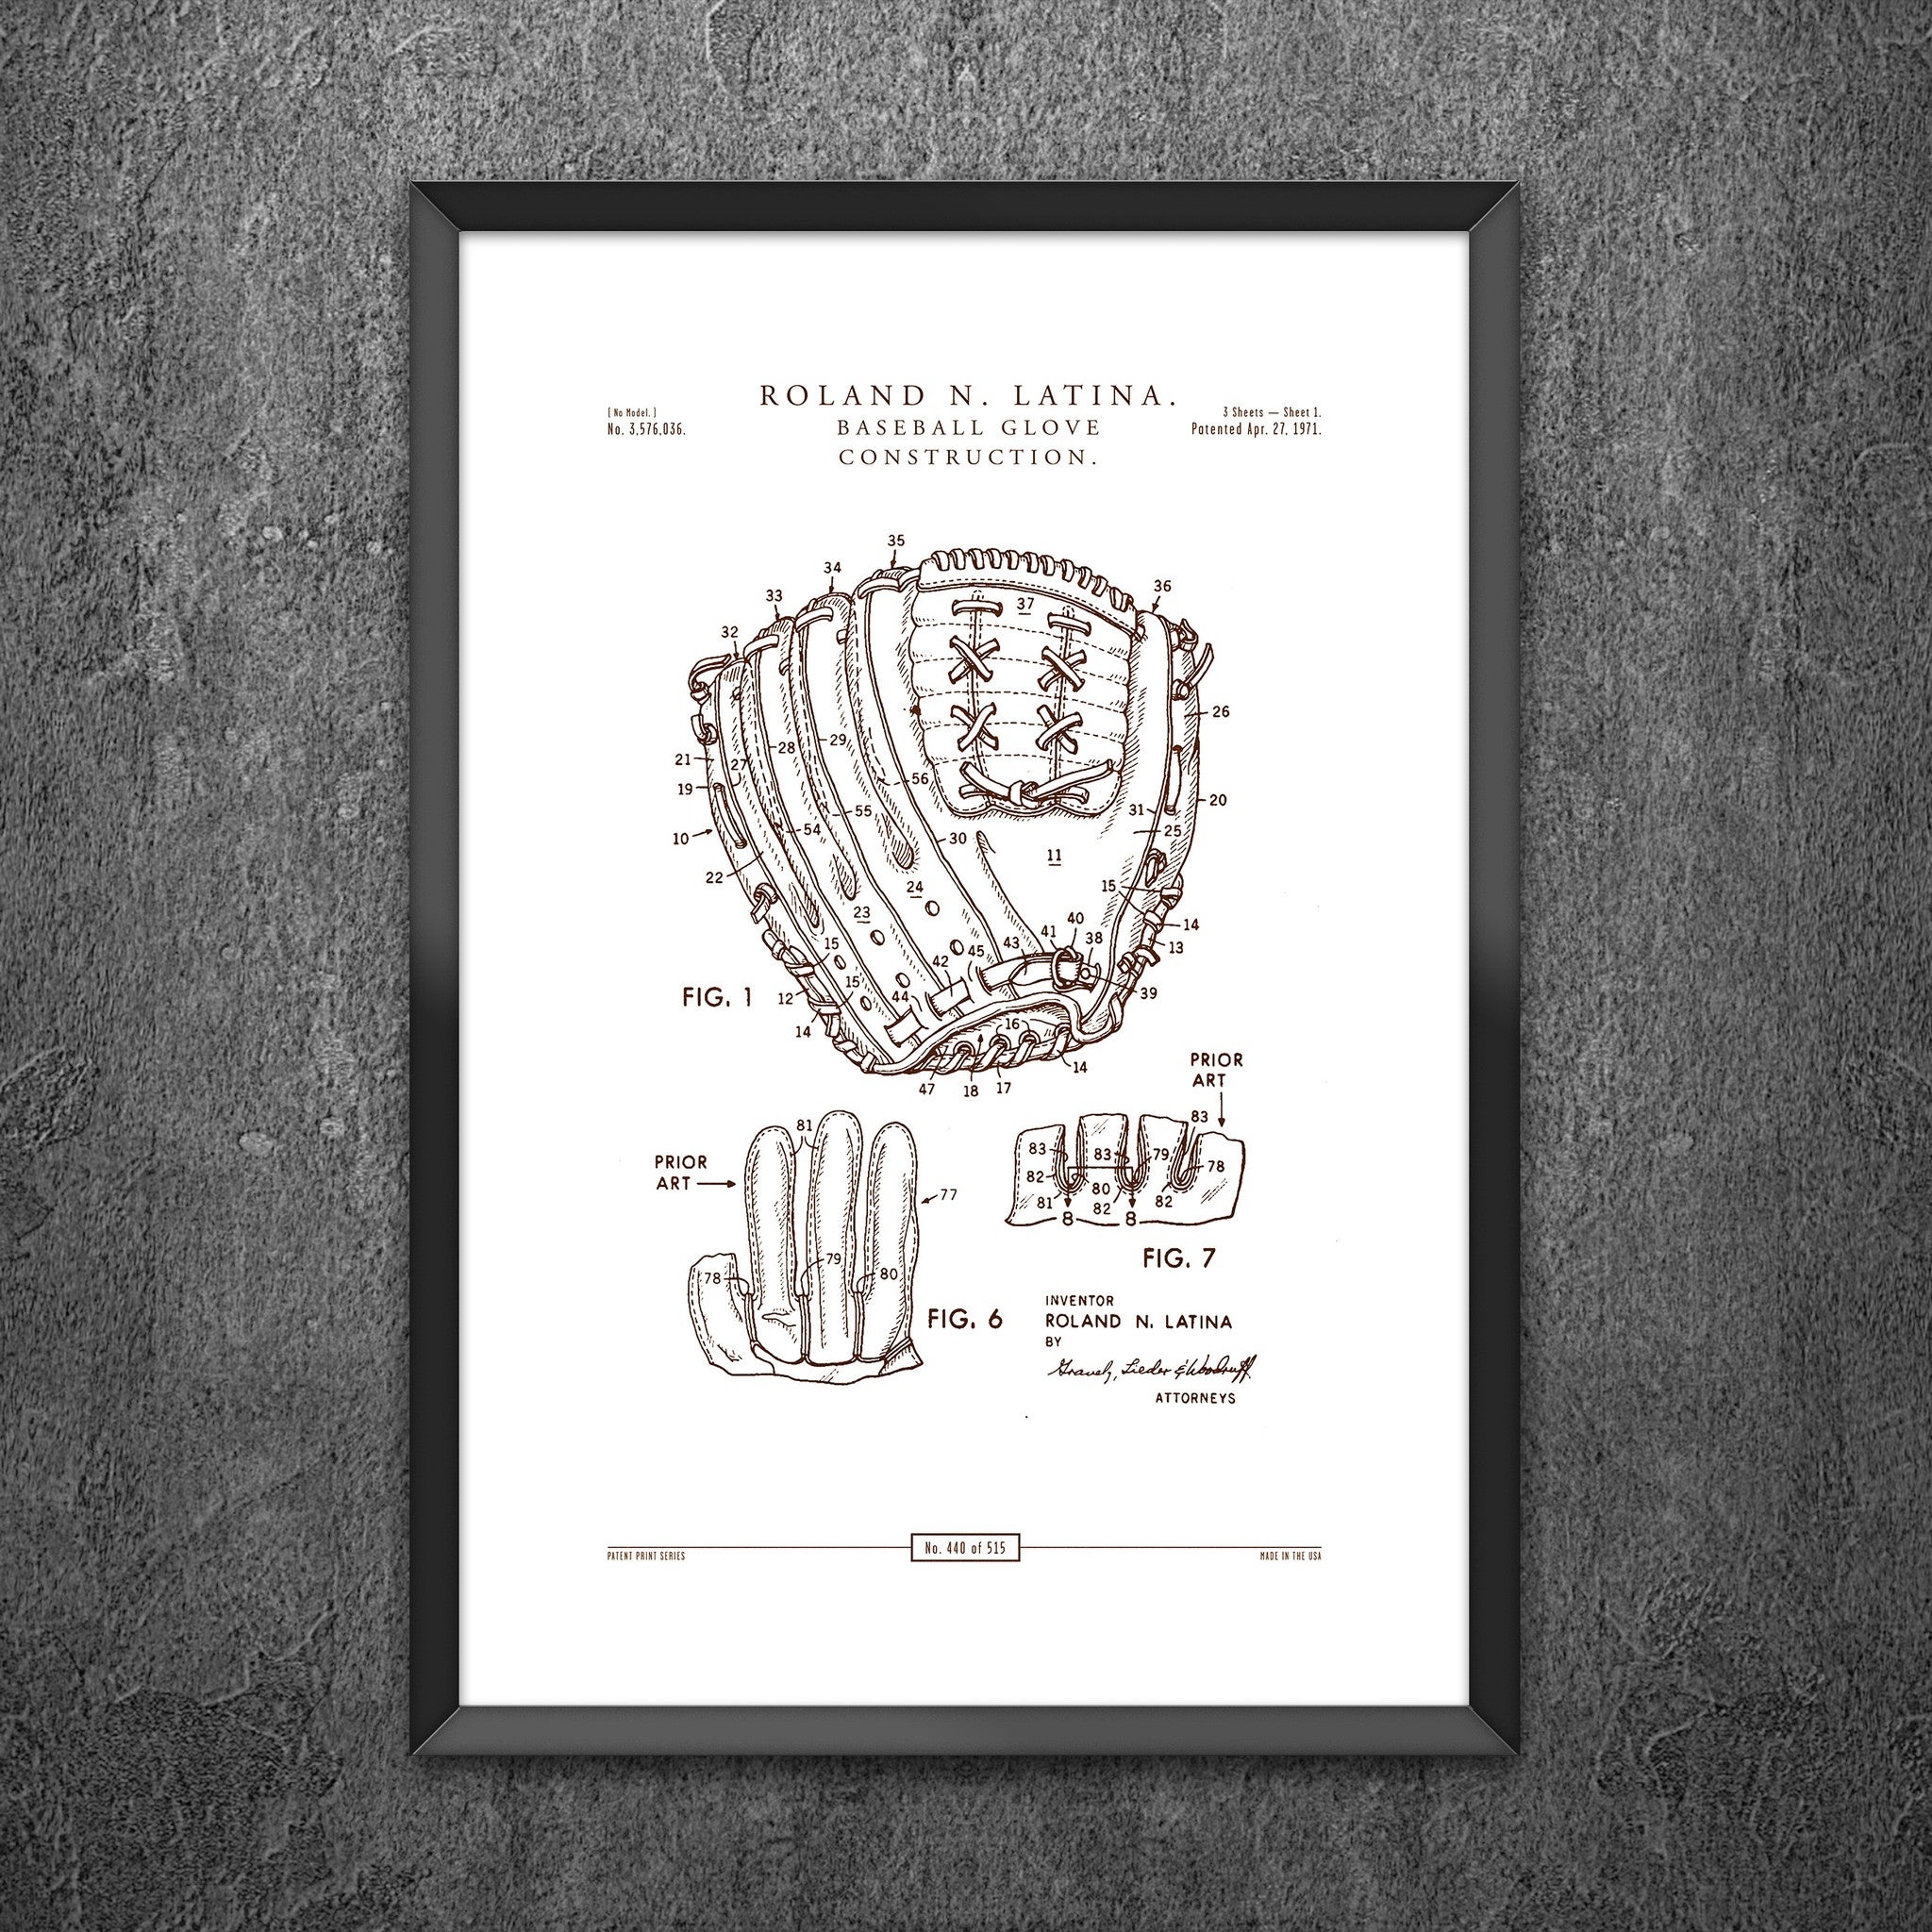 No 440 - Baseball Glove Construction